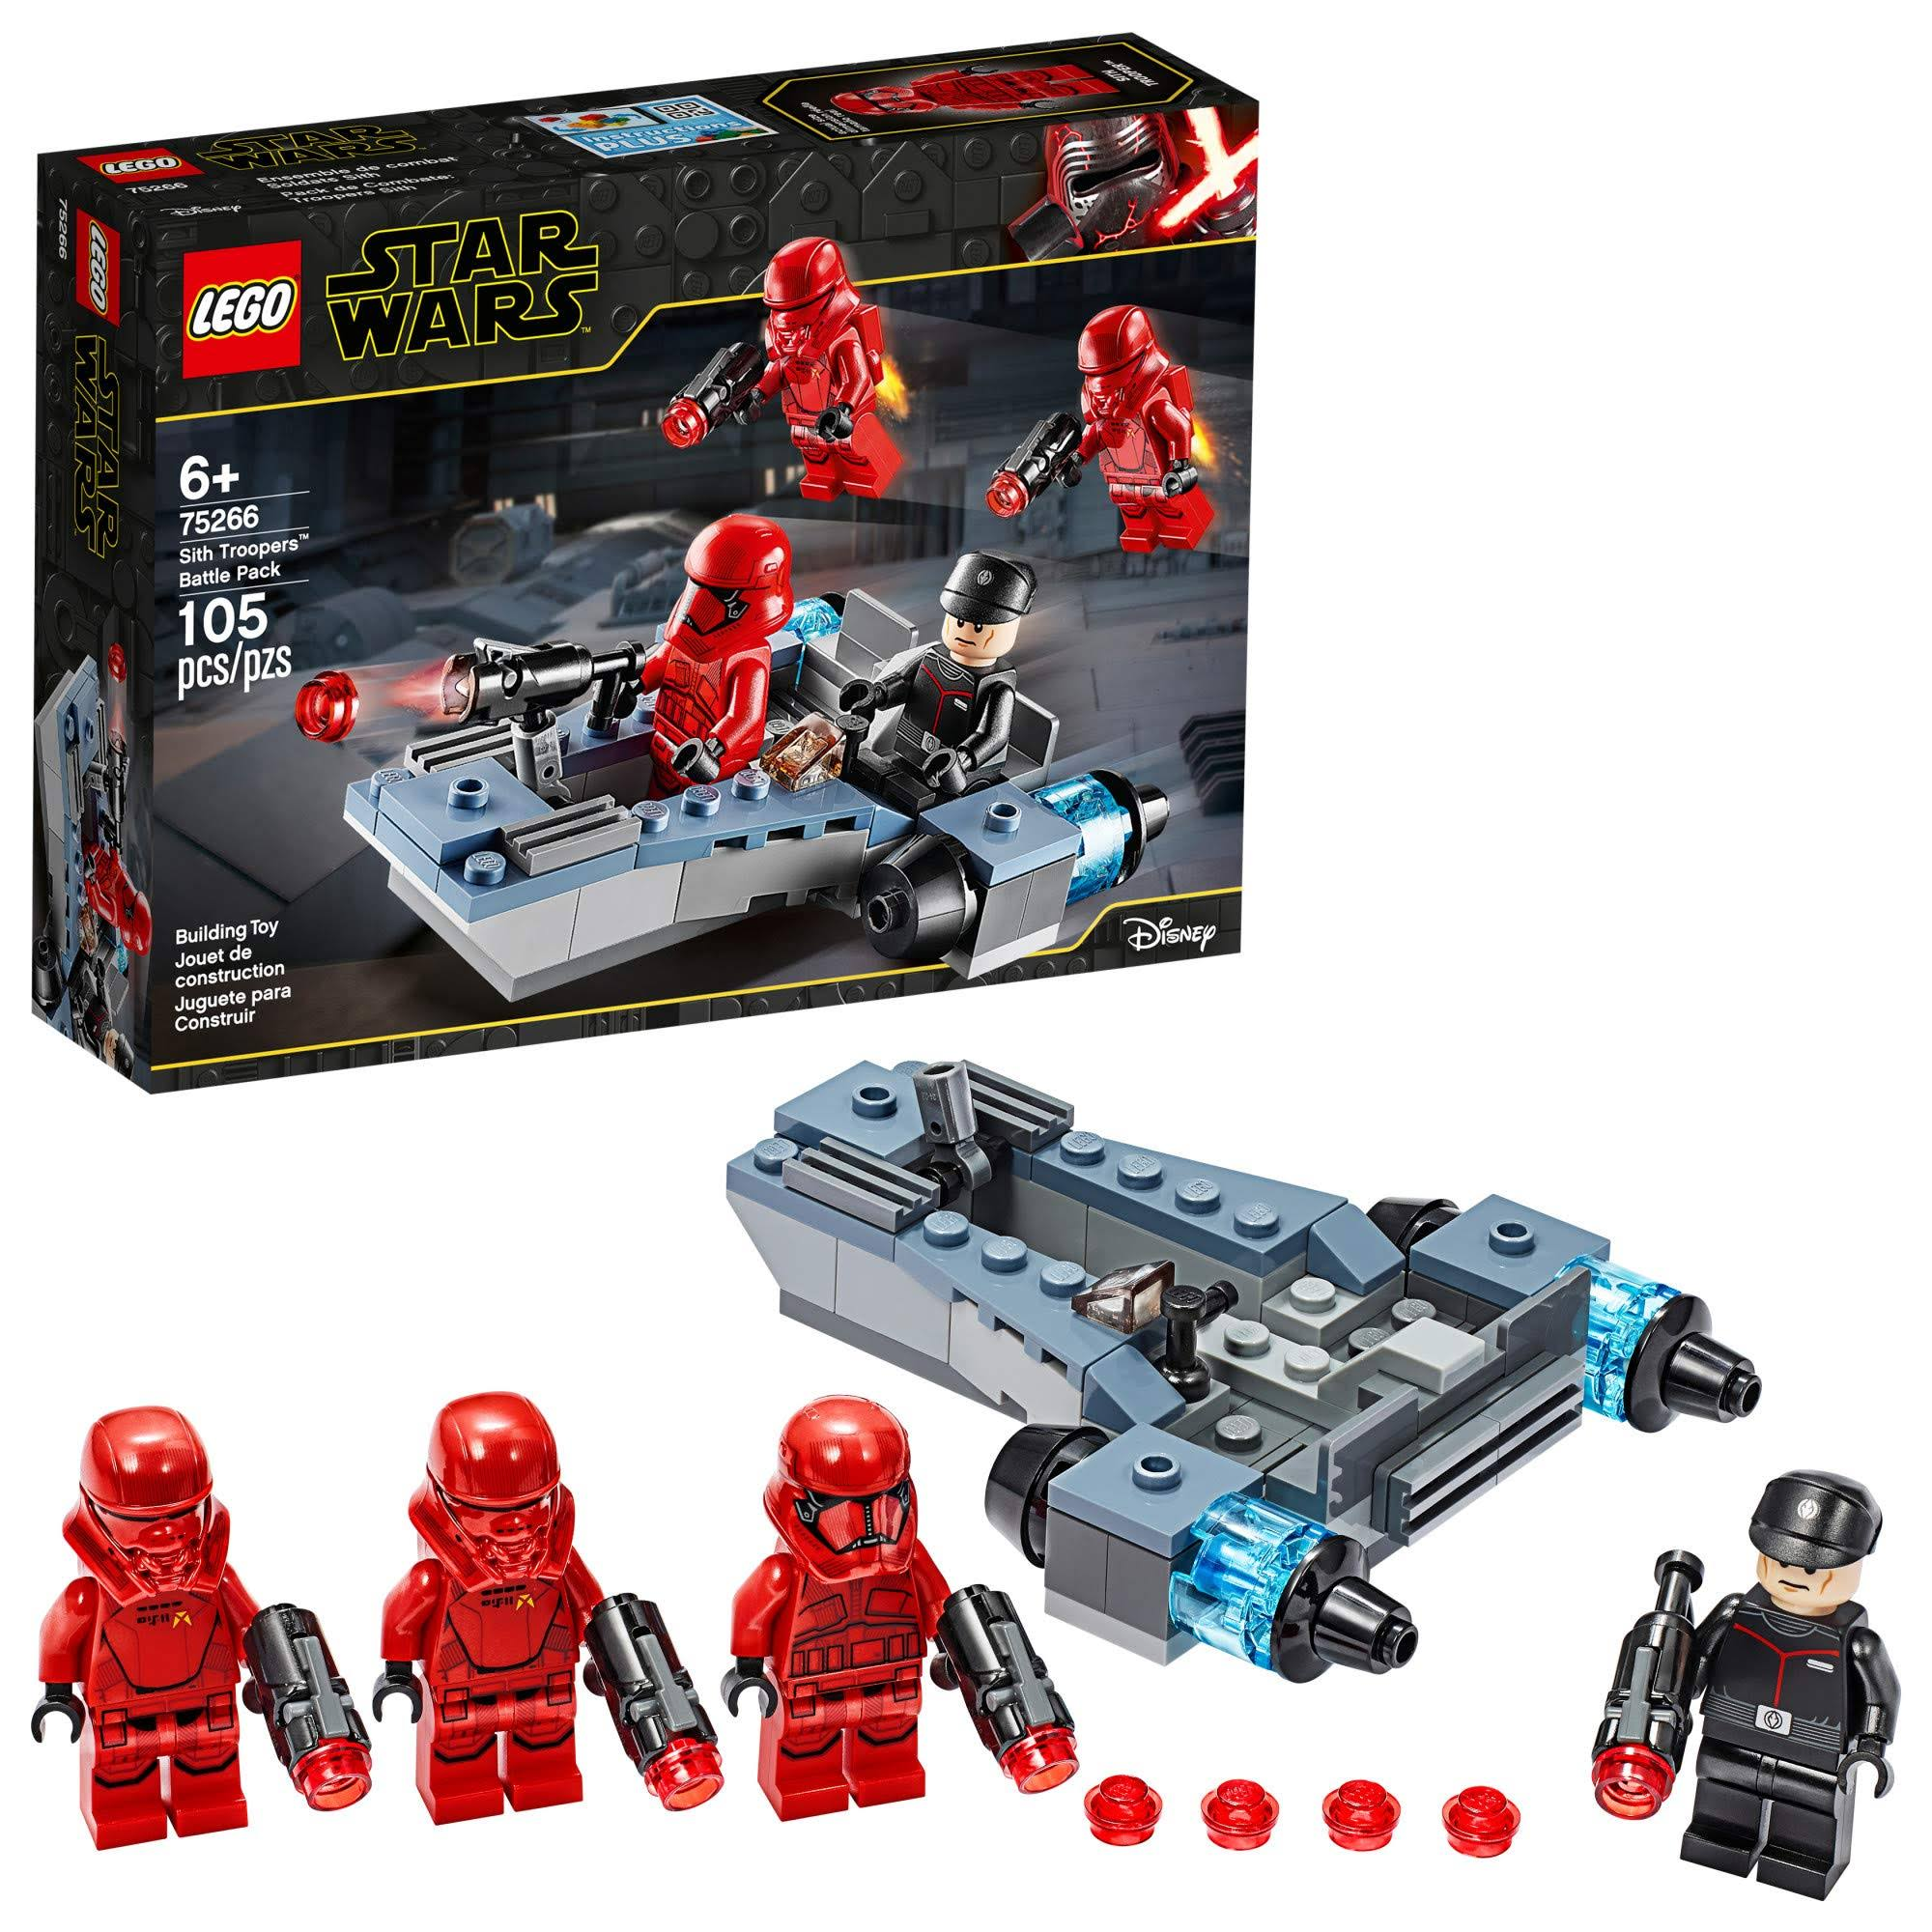 Lego Star Wars - Sith Troopers Battle Pack 75266